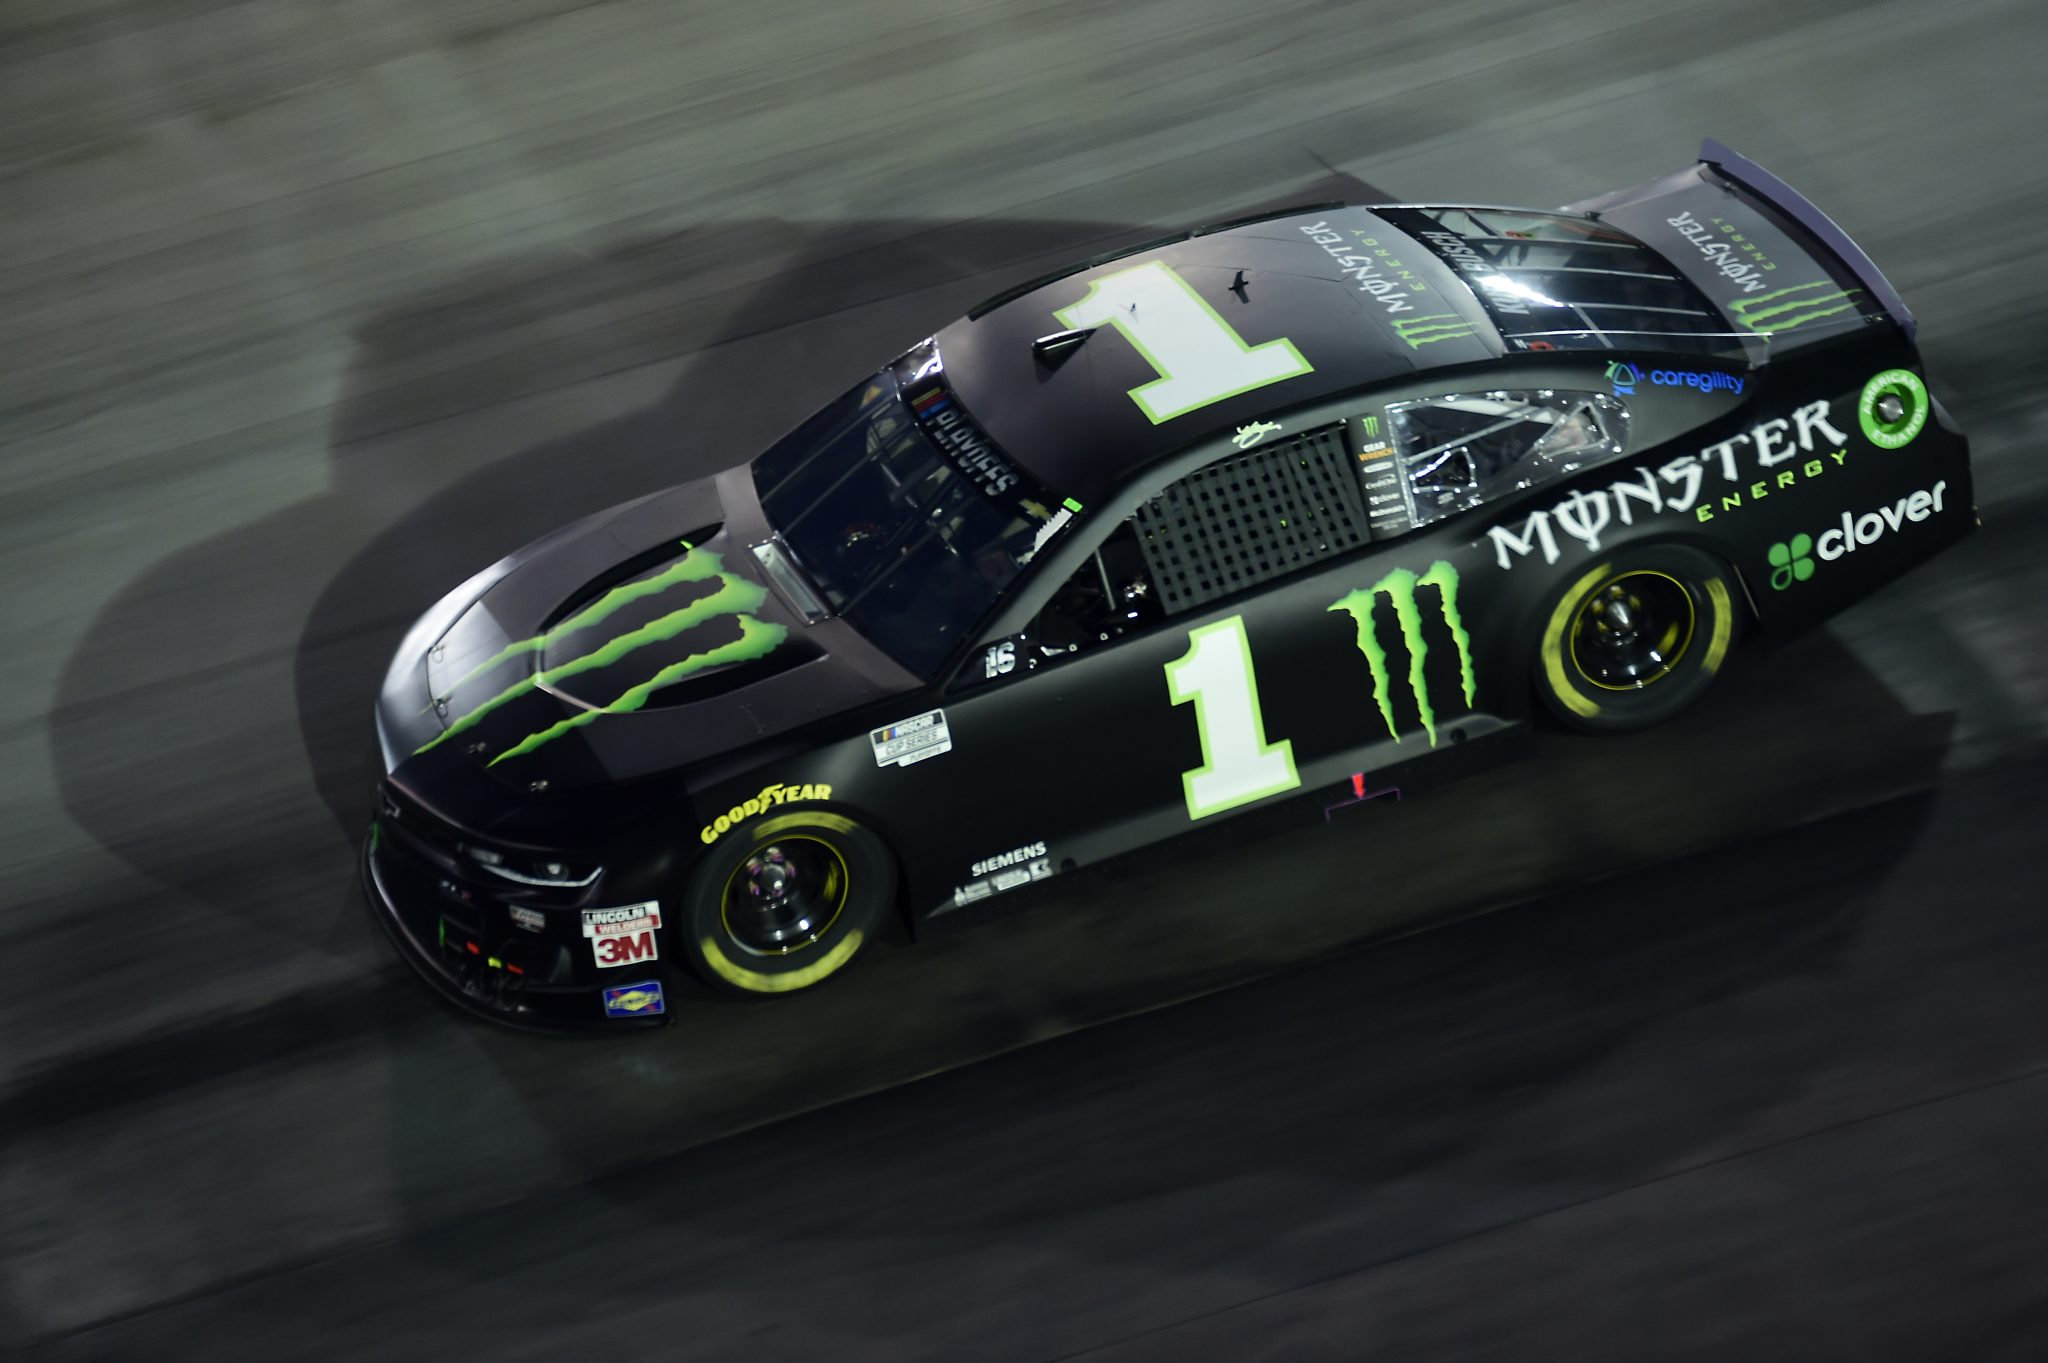 BRISTOL, TENNESSEE - SEPTEMBER 19: Kurt Busch, driver of the #1 Monster Energy Chevrolet, drives during the NASCAR Cup Series Bass Pro Shops Night Race at Bristol Motor Speedway on September 19, 2020 in Bristol, Tennessee. (Photo by Jared C. Tilton/Getty Images) | Getty Images